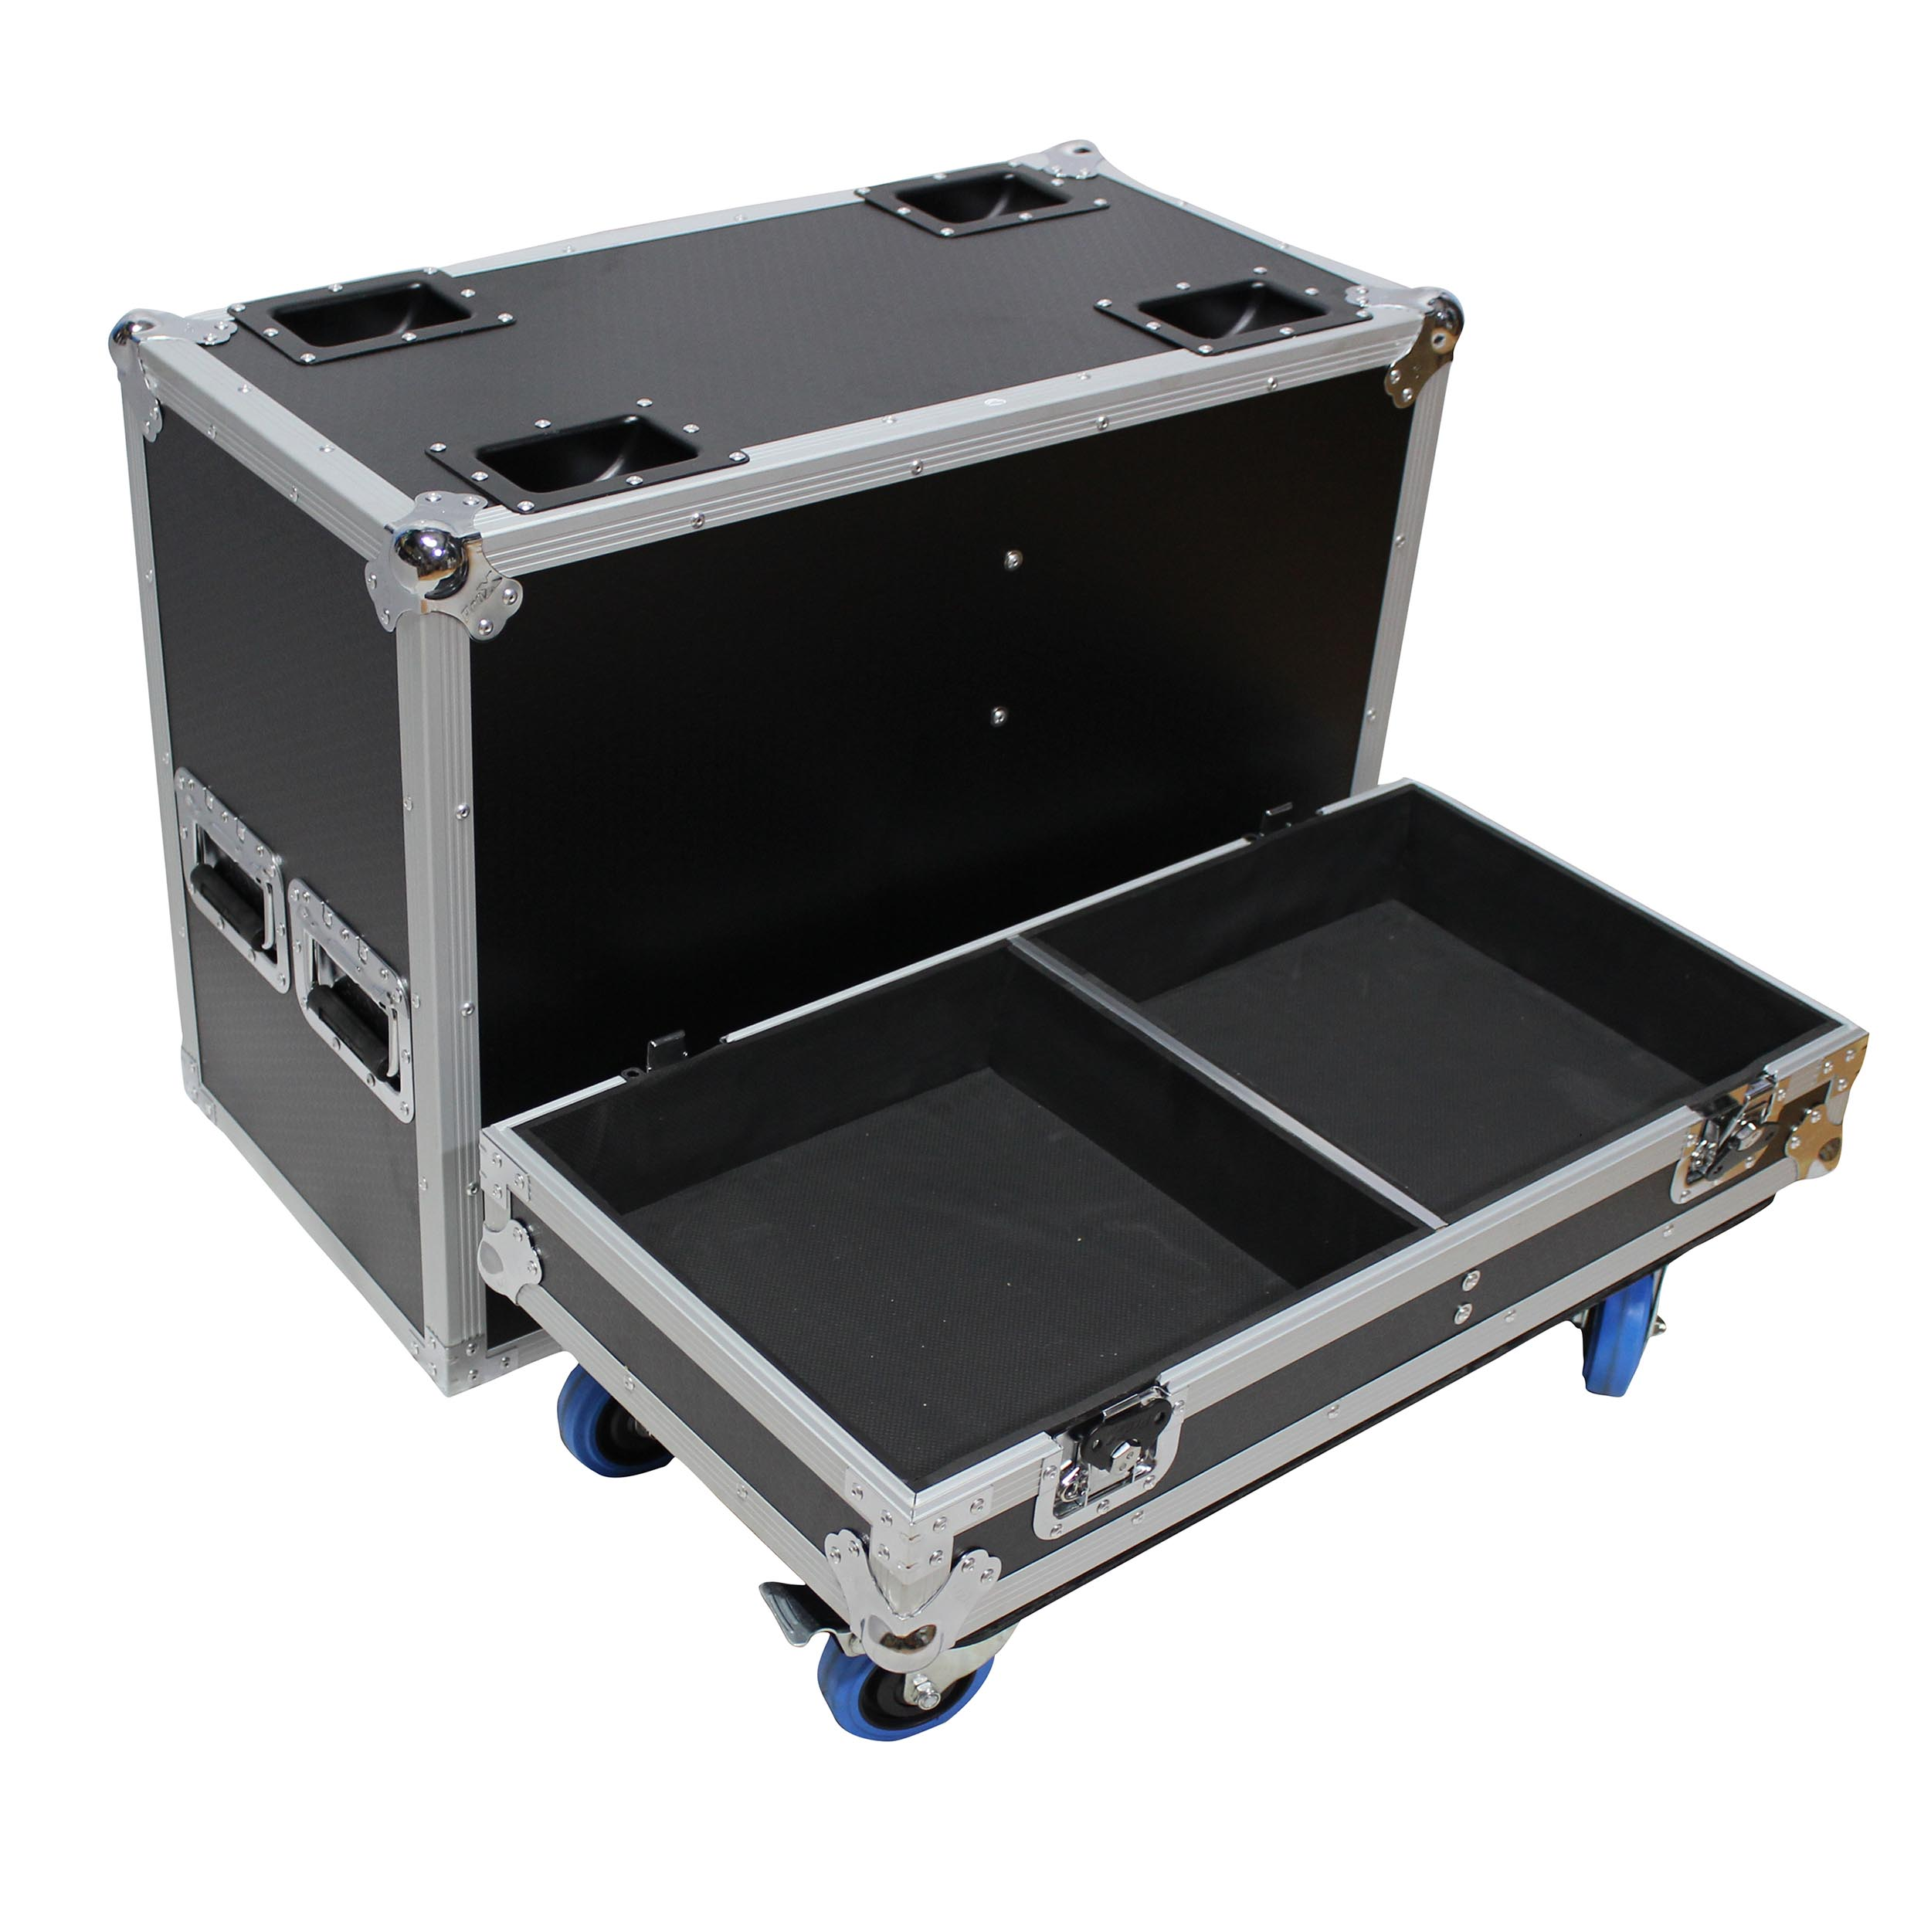 Fits 2x RCF HDL 18-AS Flyable Subwoofer Flight Case with 4